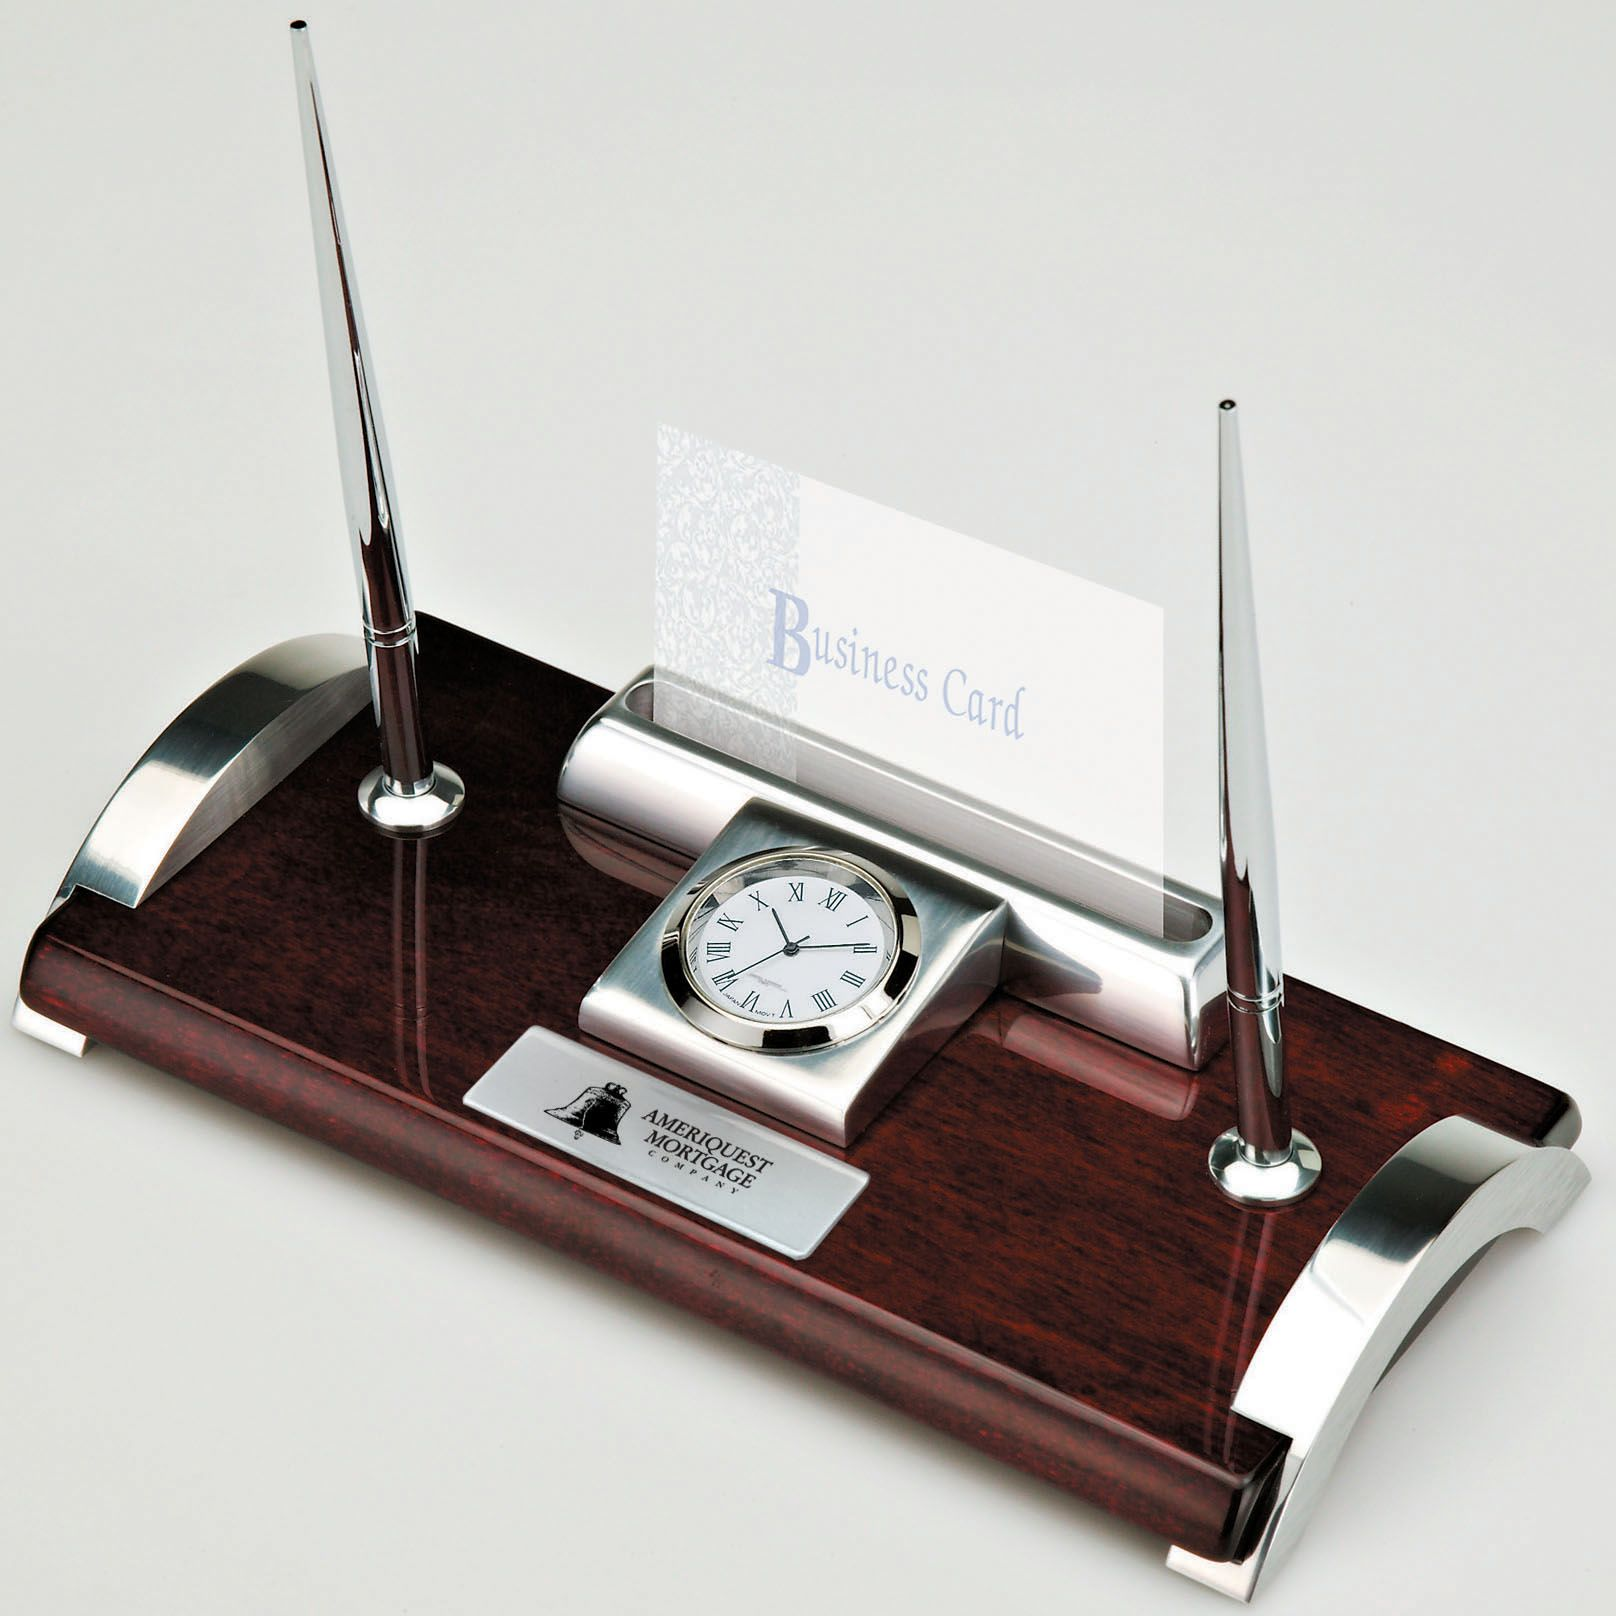 Executive Office Desk Accessories Living Room Table Sets Cheap Check More At Http Www Gameintown Co Desk Accessories Executive Desk Desk Accessories Office